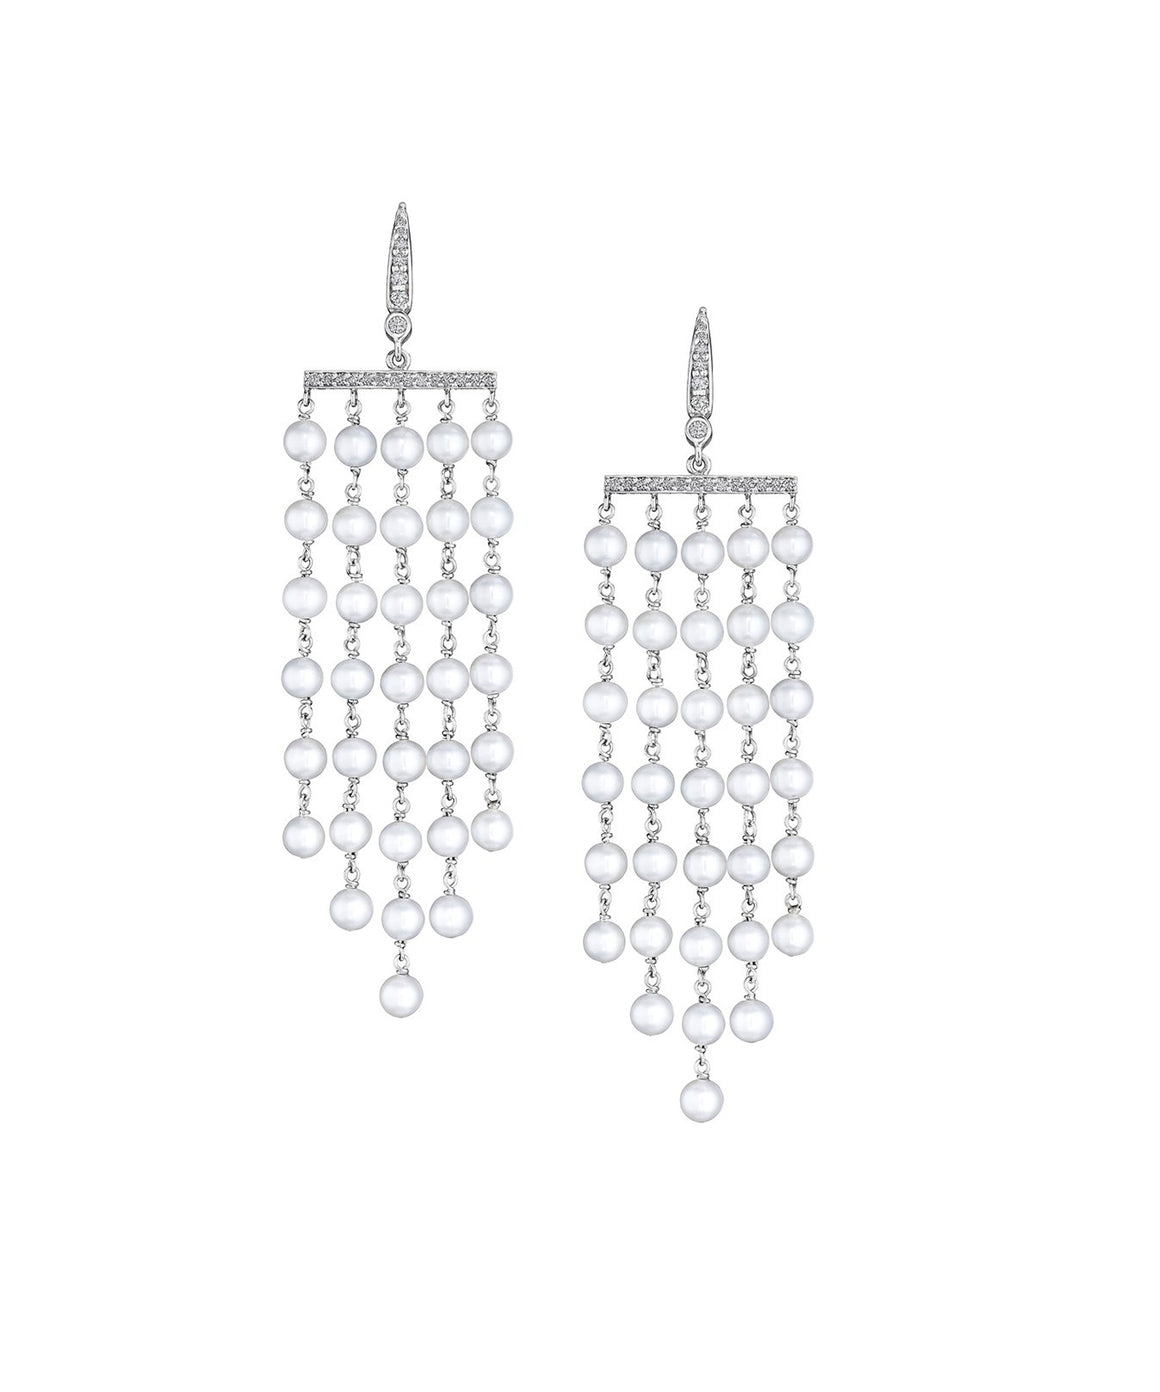 Cascading Waterfall Pearl Earrings - Lesley Ann Jewels